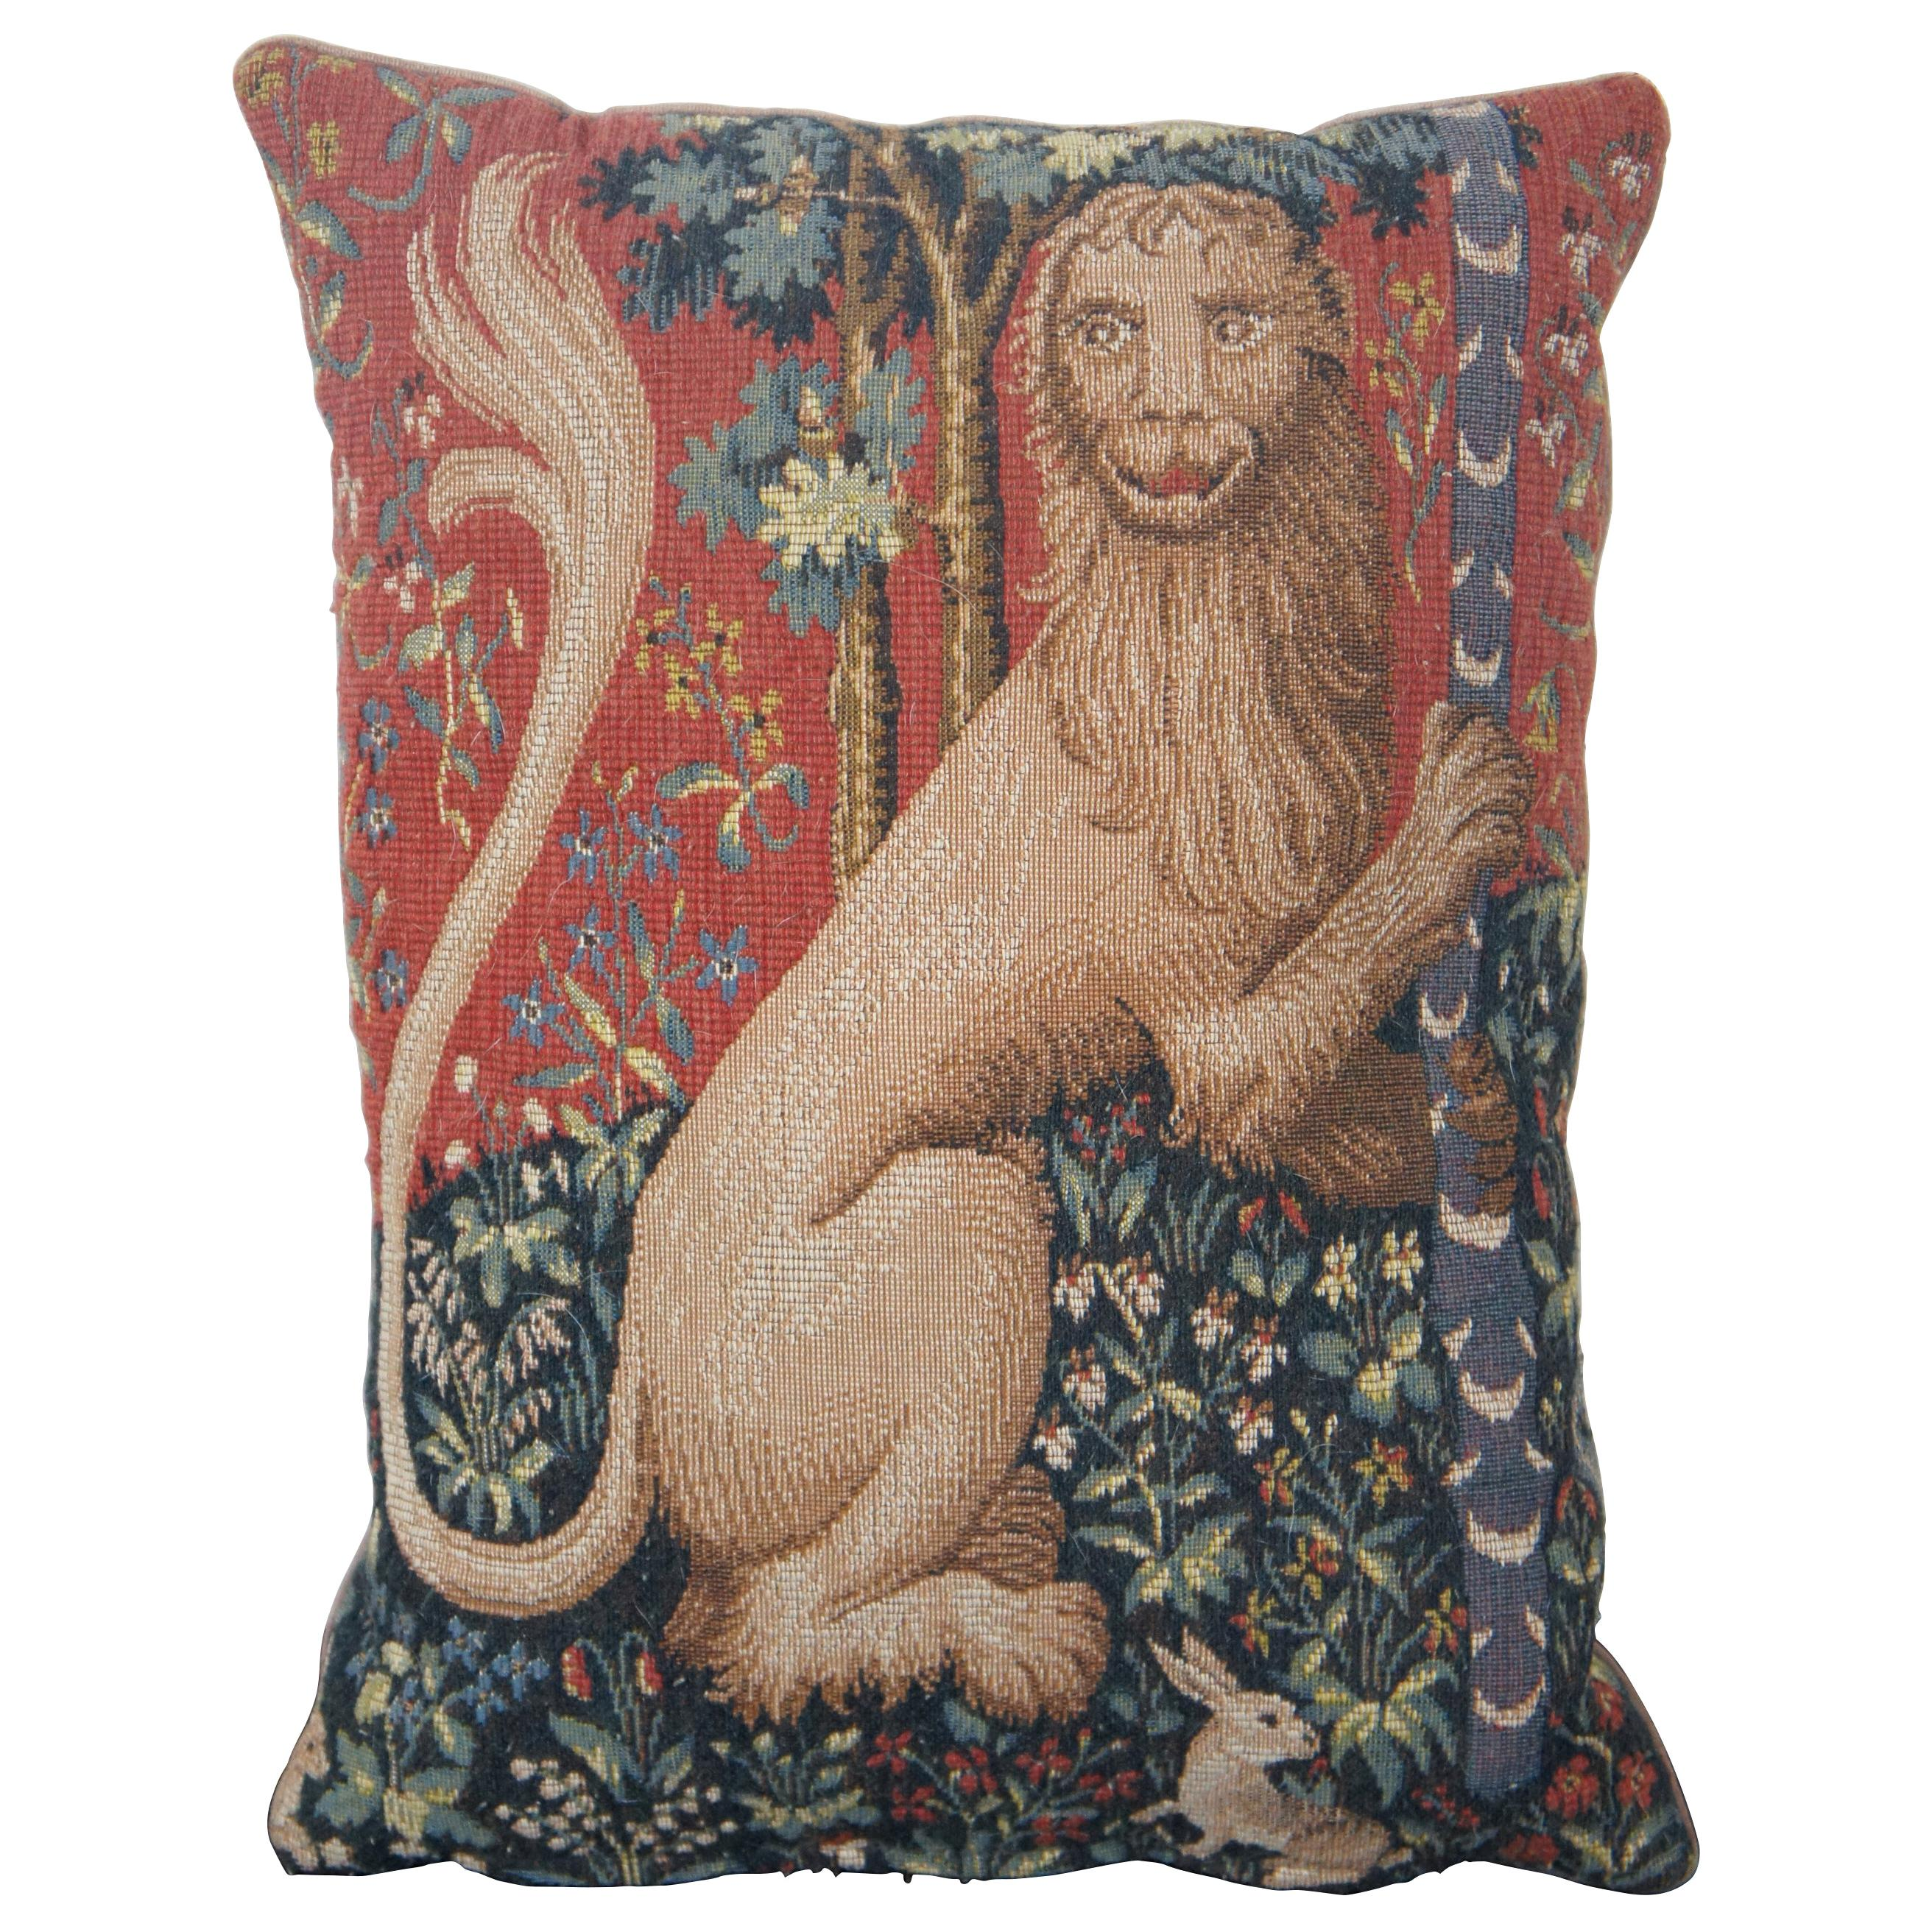 CJC Medieval Tapestry Needlepoint Tapestry Down Fill Throw Pillow Lion France